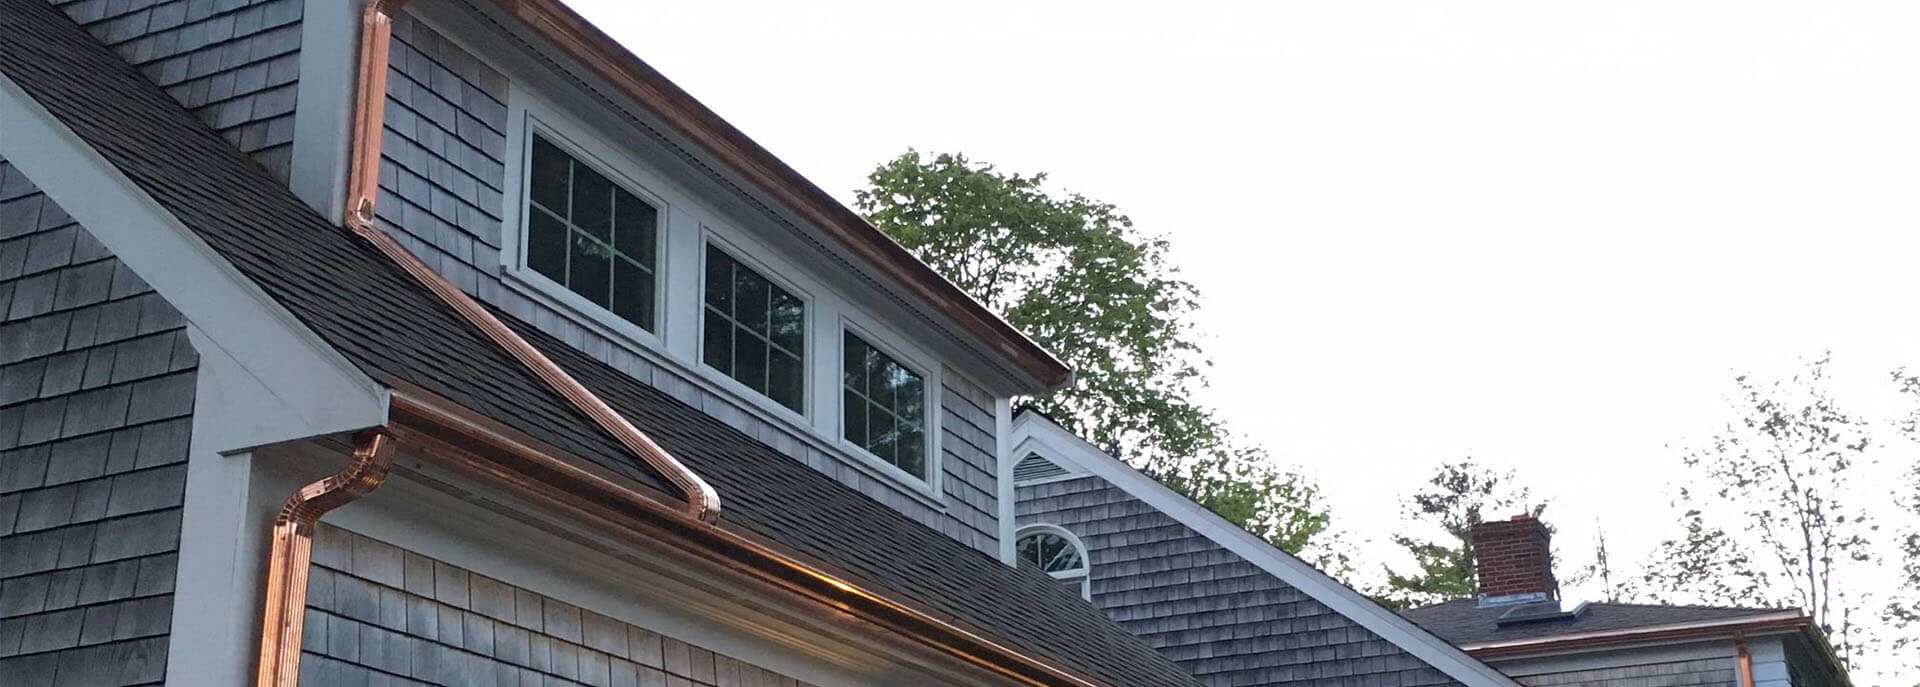 Residential And Commercial Roofing And Gutters Contractor